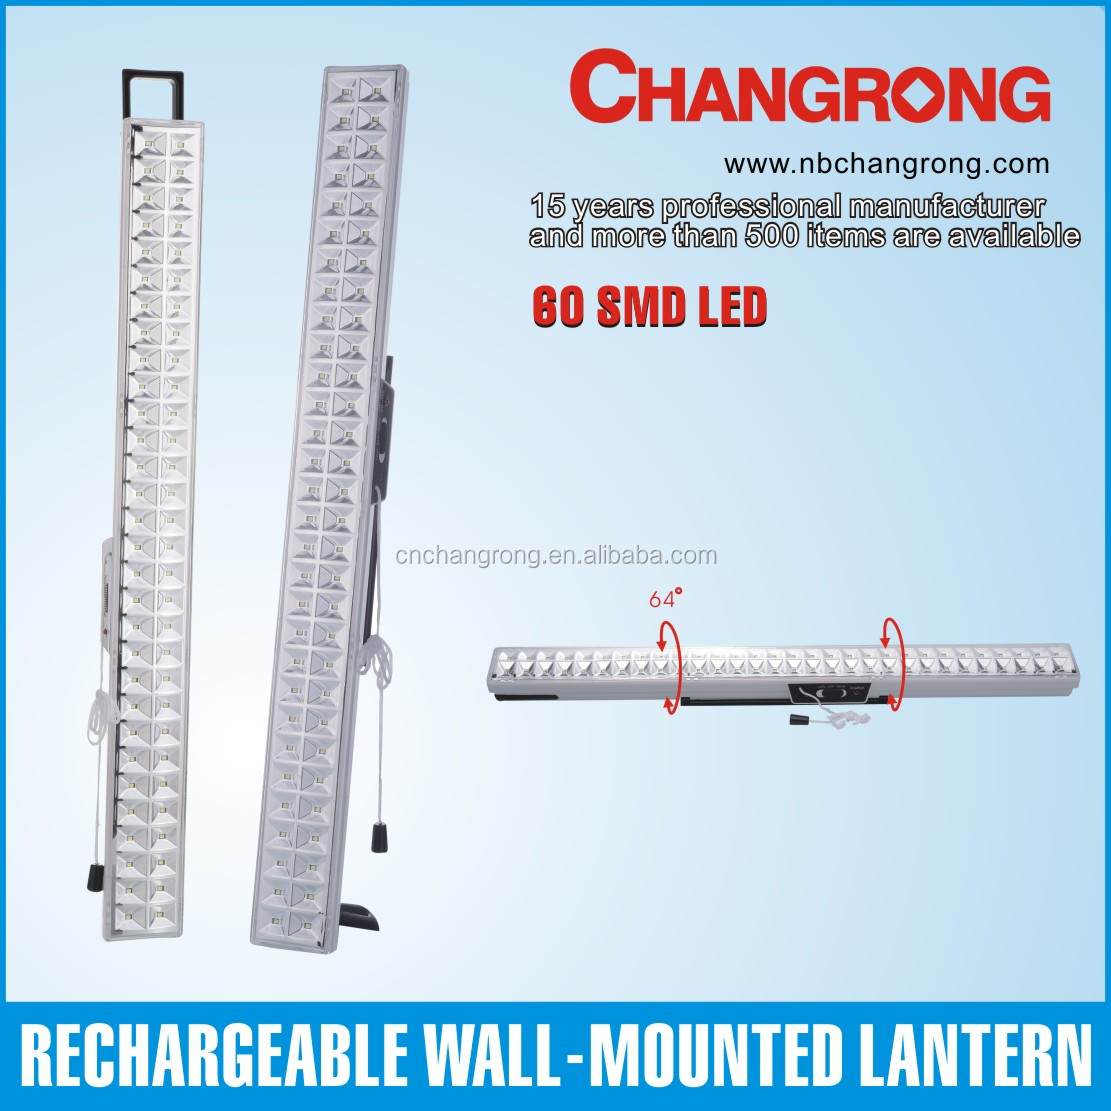 60LED Stand-by rechargeable powerful failure SMD LED light